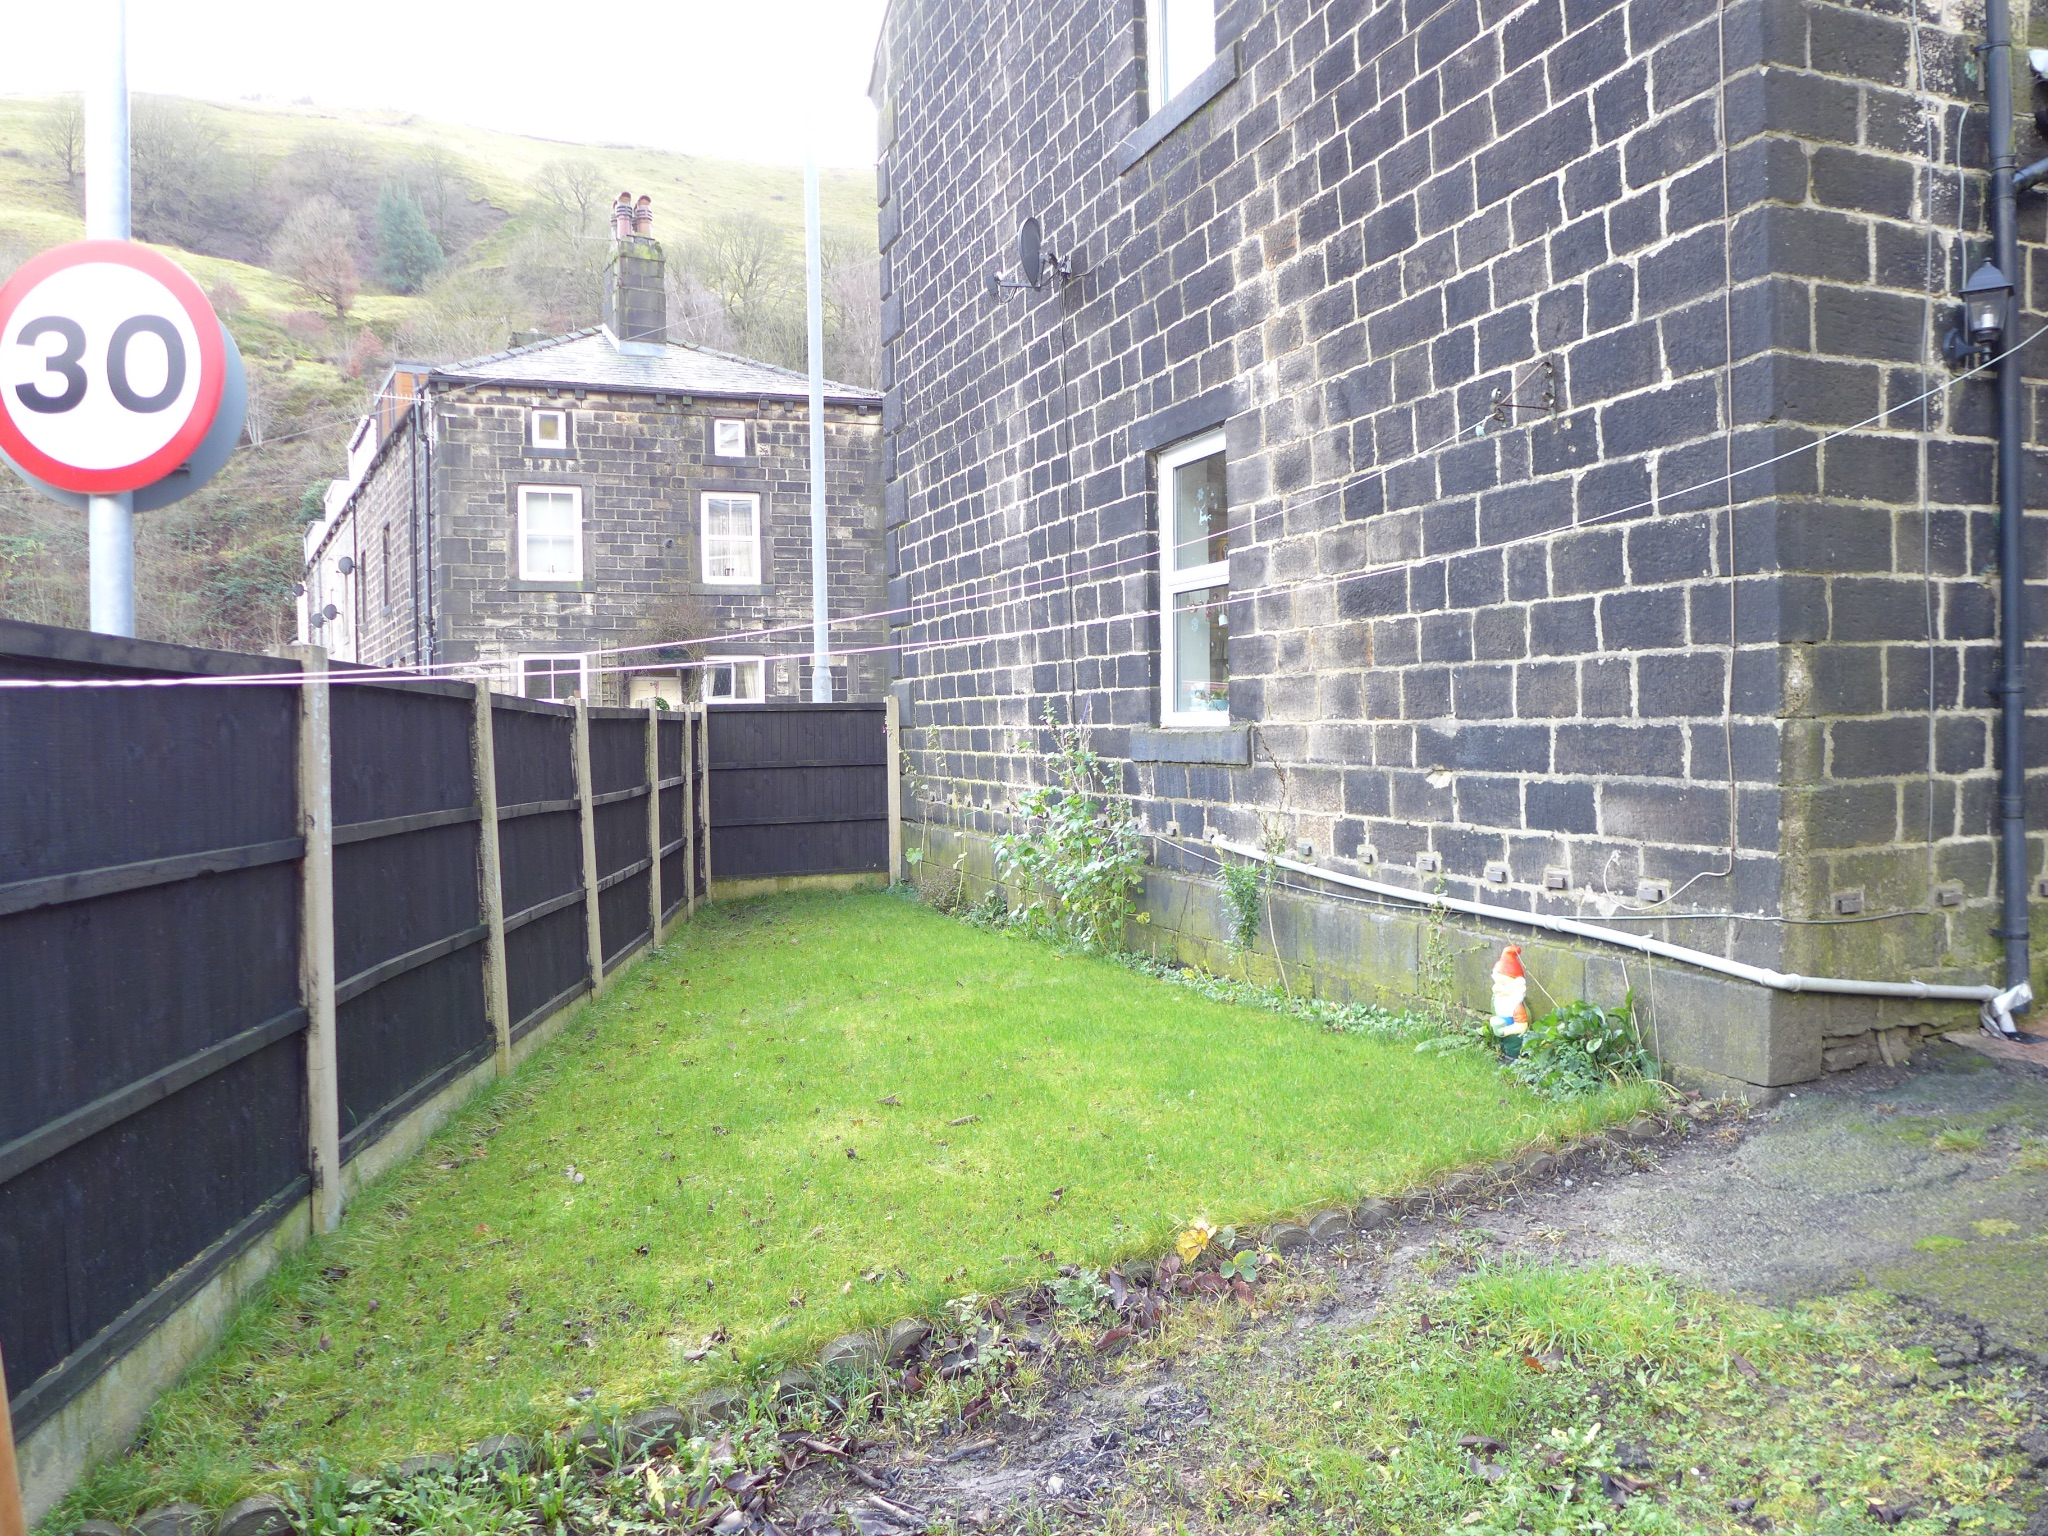 4 bedroom end terraced house For Sale in Calderdale - Photograph 25.